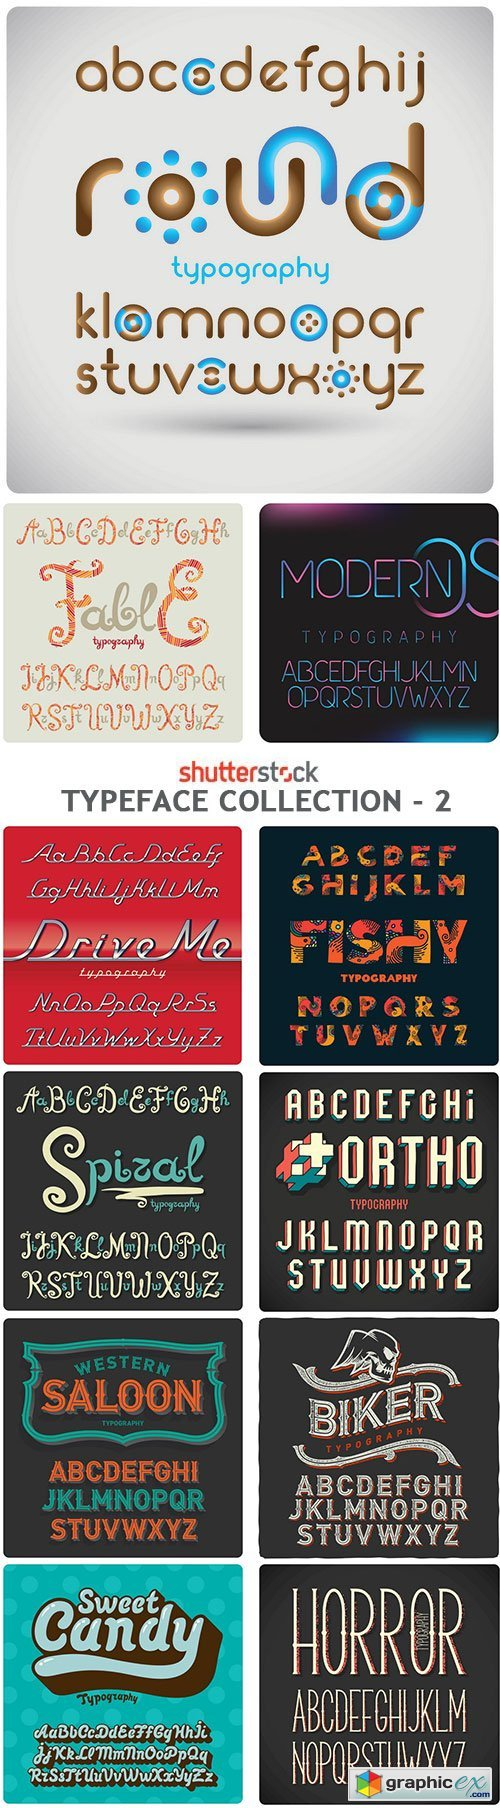 Typeface Collection - 2 - 25xEPS